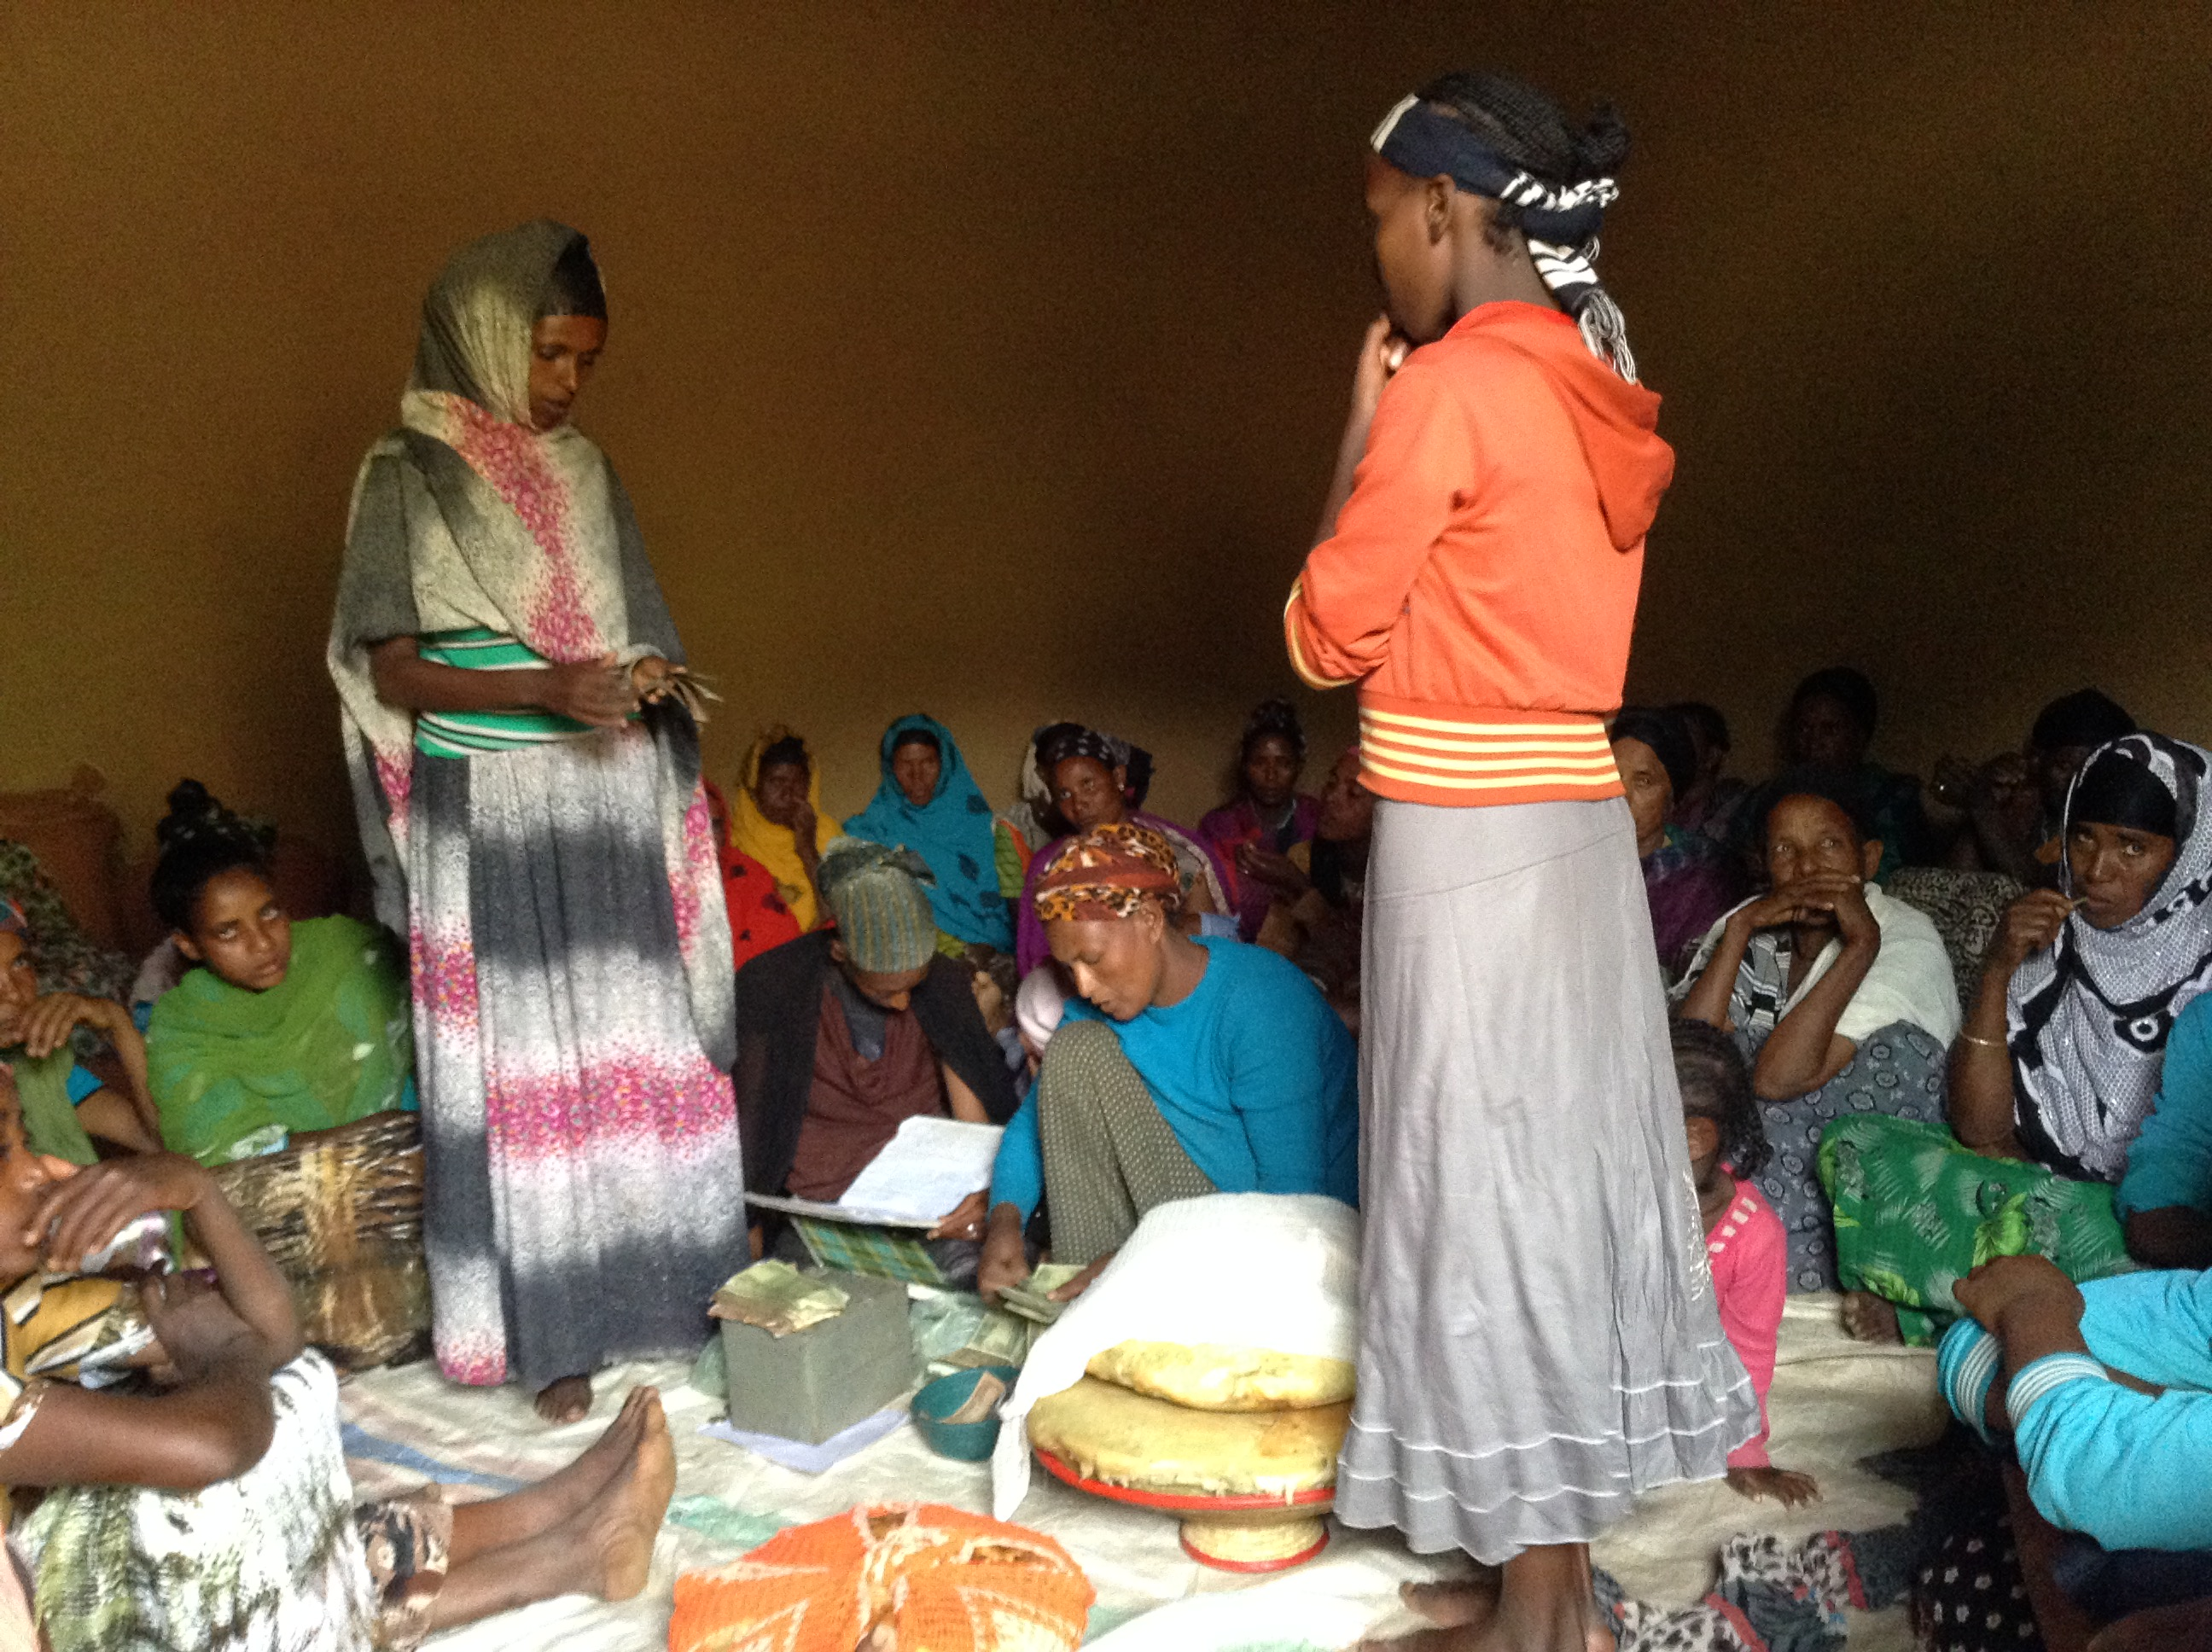 SILC (Savings and Internal Lending Community) groups allow women to save and take out loans to feed their families or start businesses. Photo by Fetiya Ahmed for CRS